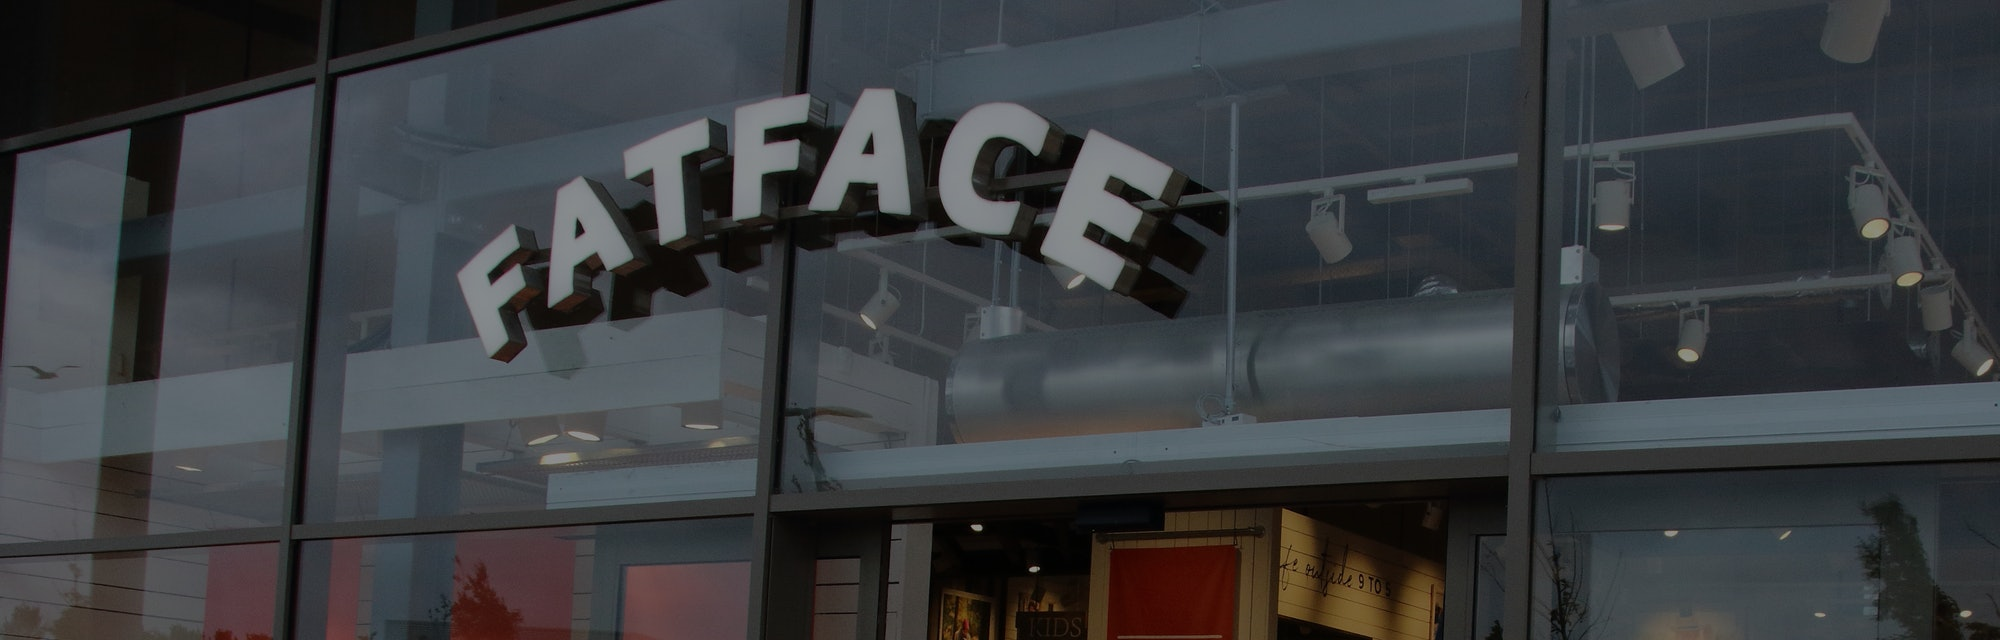 RUSHDEN, UNITED KINGDOM - 2020/07/07: Fatface store seen at Rushden Lakes complex. (Photo by Keith Mayhew/SOPA Images/LightRocket via Getty Images)